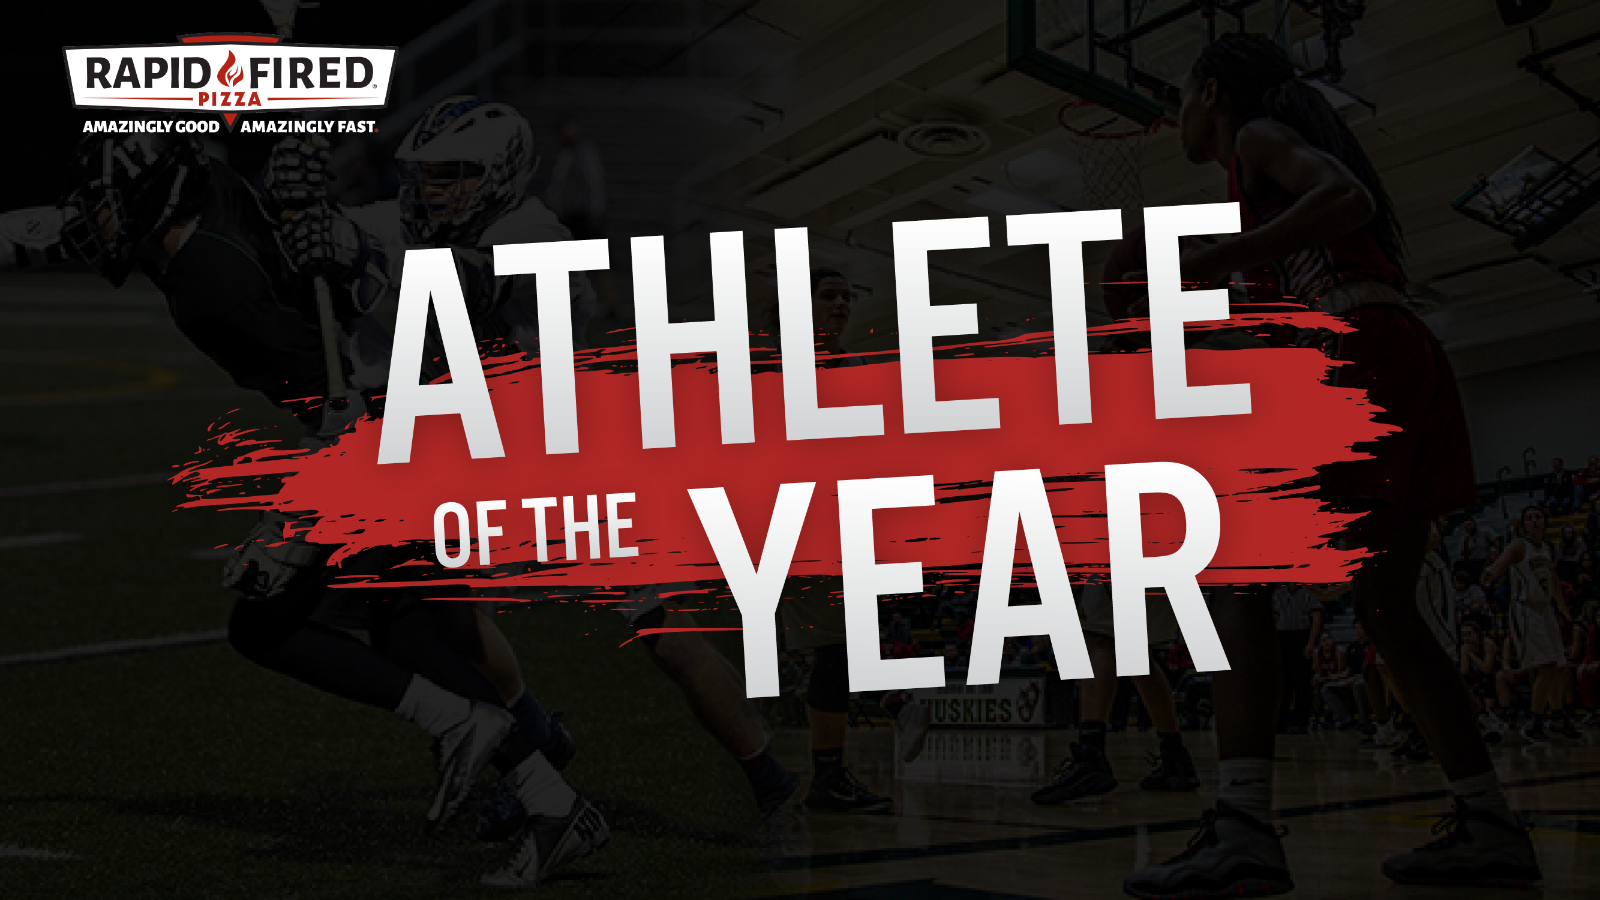 VOTE: Rapid Fired Pizza 2019 Athlete of the Year